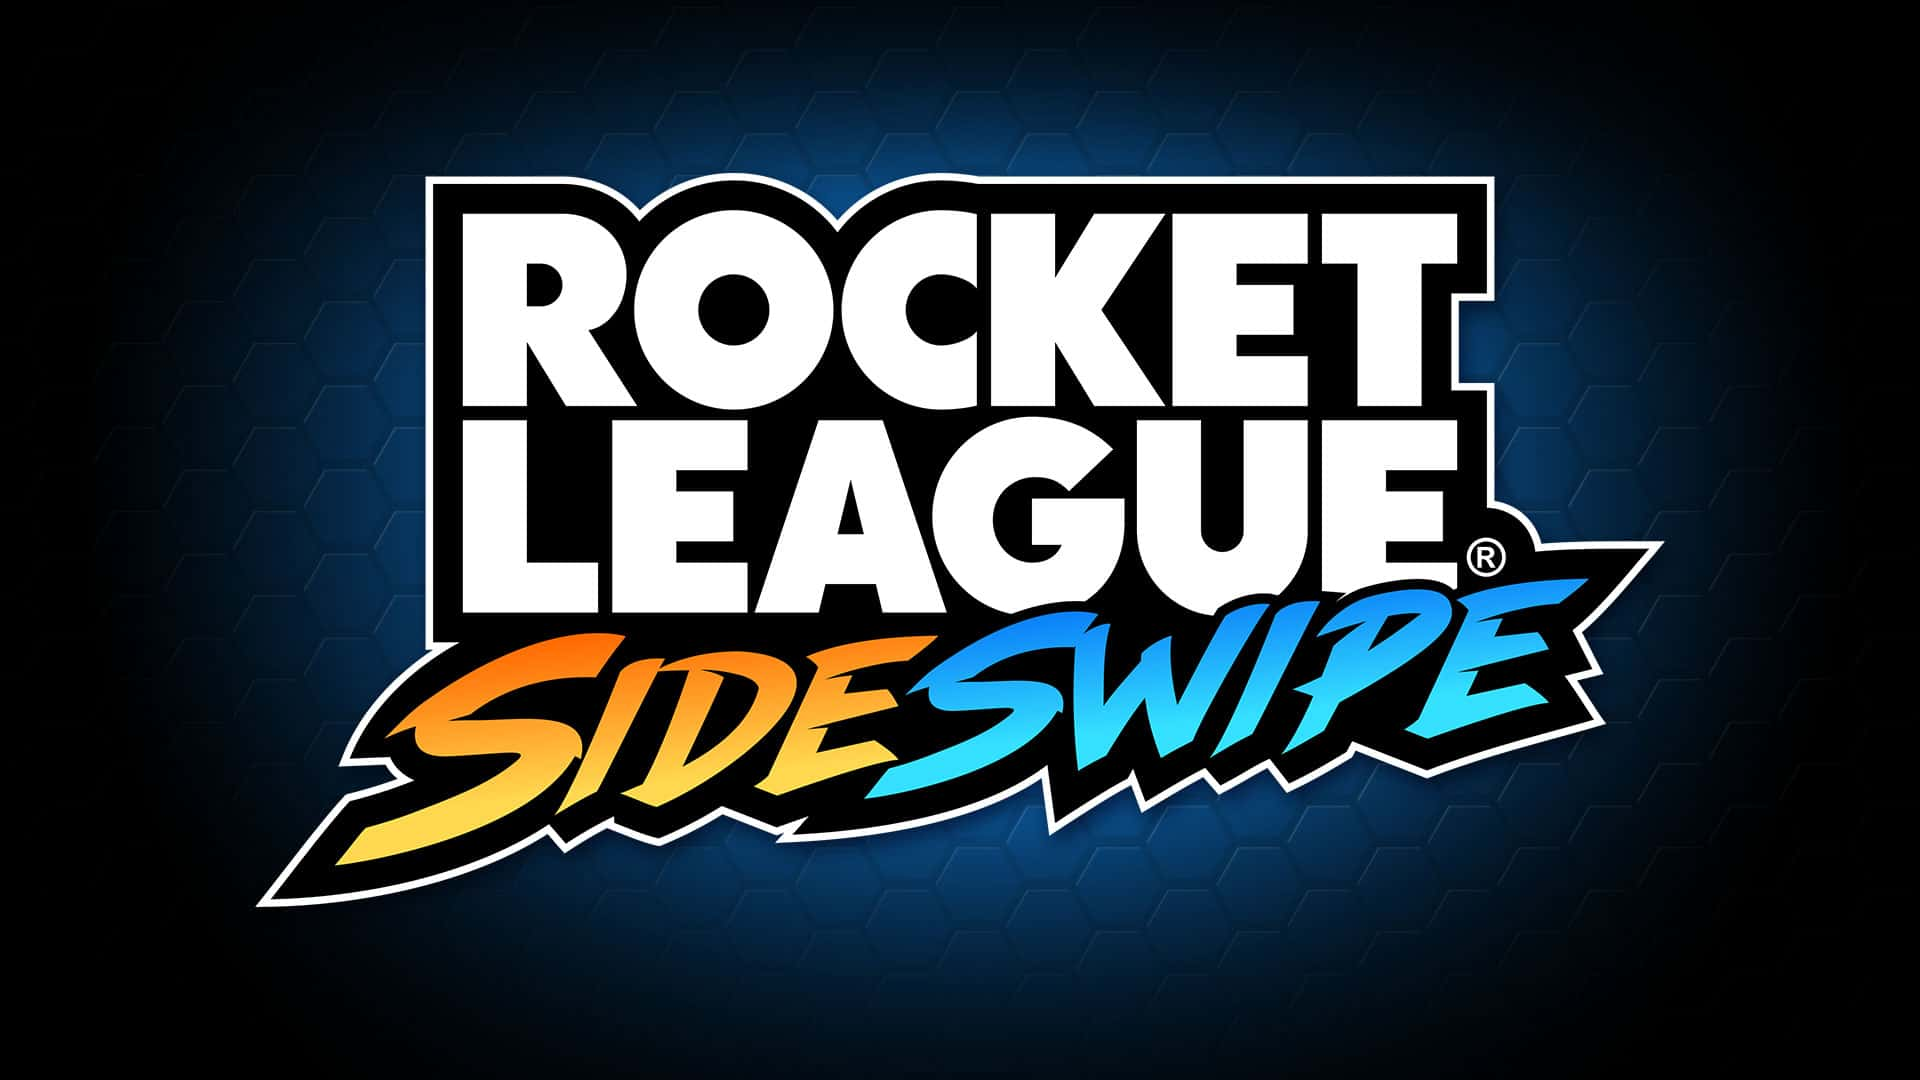 Rocket League Sideswipe has been announced for mobile devices and is expected to be released this year